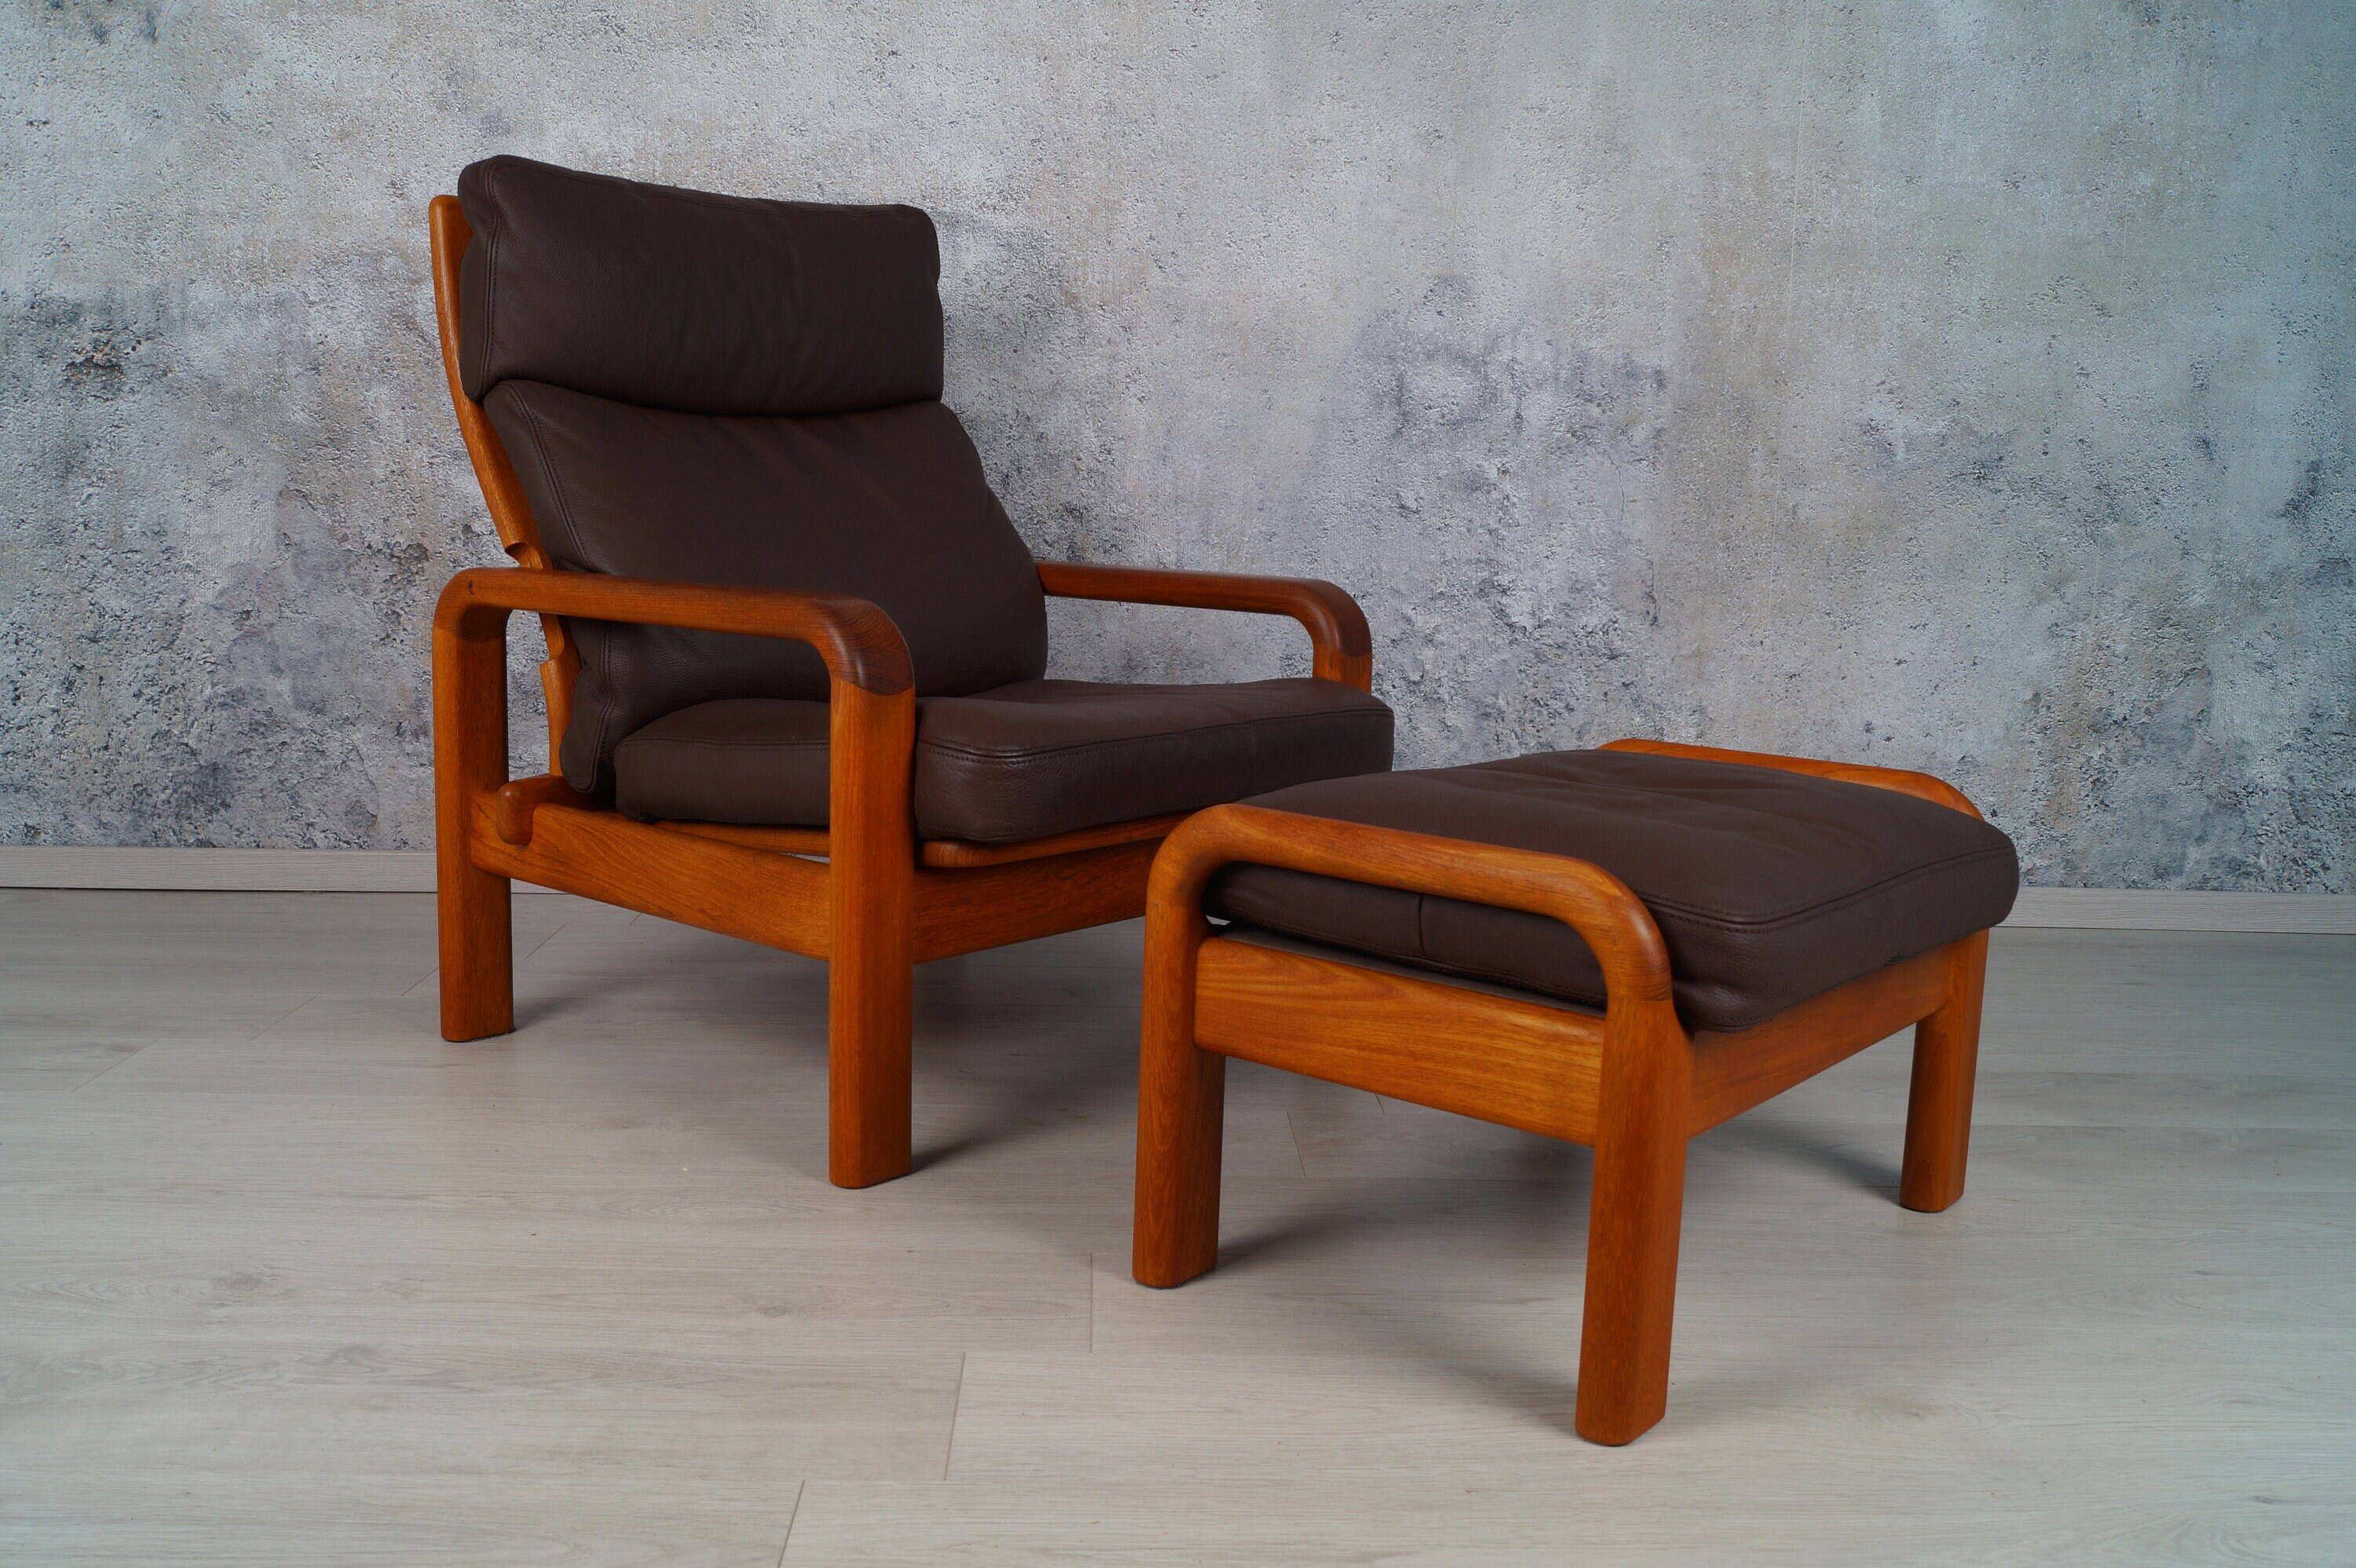 Teak Sessel Danish Danish Teak Armchair With Stool By L Olsen Son Nappaleder 1960s